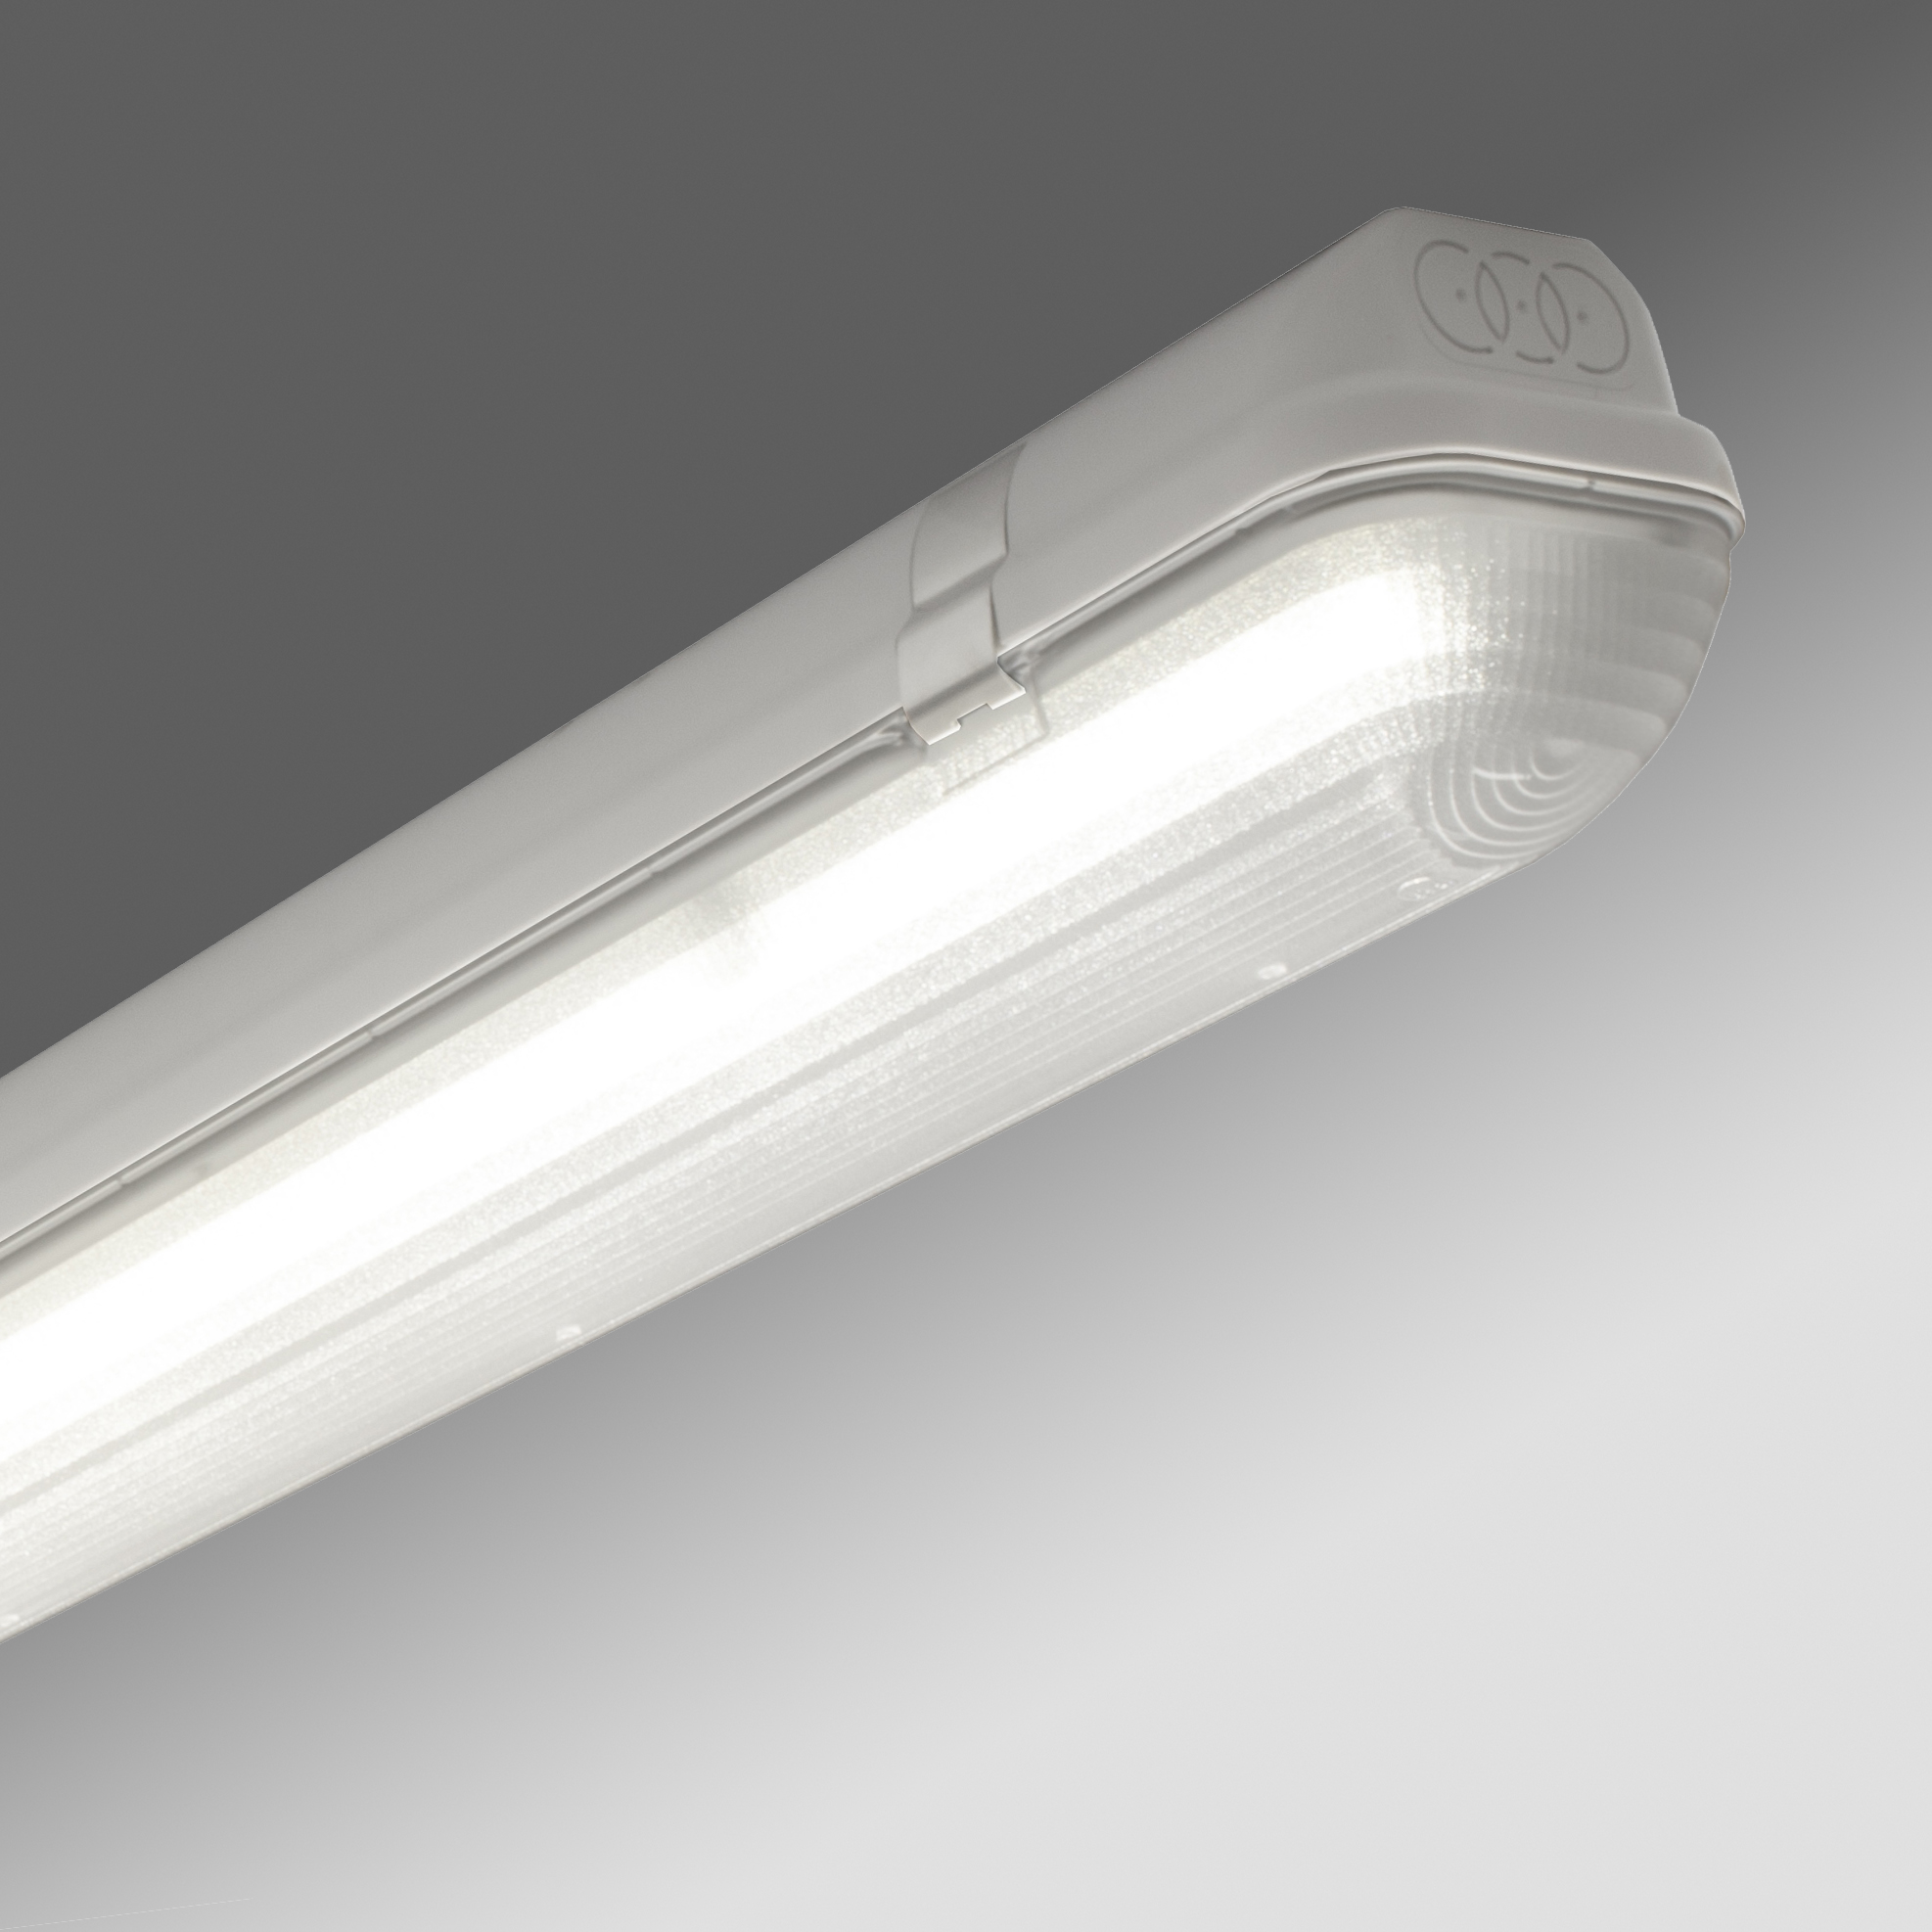 1 Stk Linda LED PC 1x24W 4000K, 3802lm, DALI, IP65, grau, l=1270mm LI2JL35124